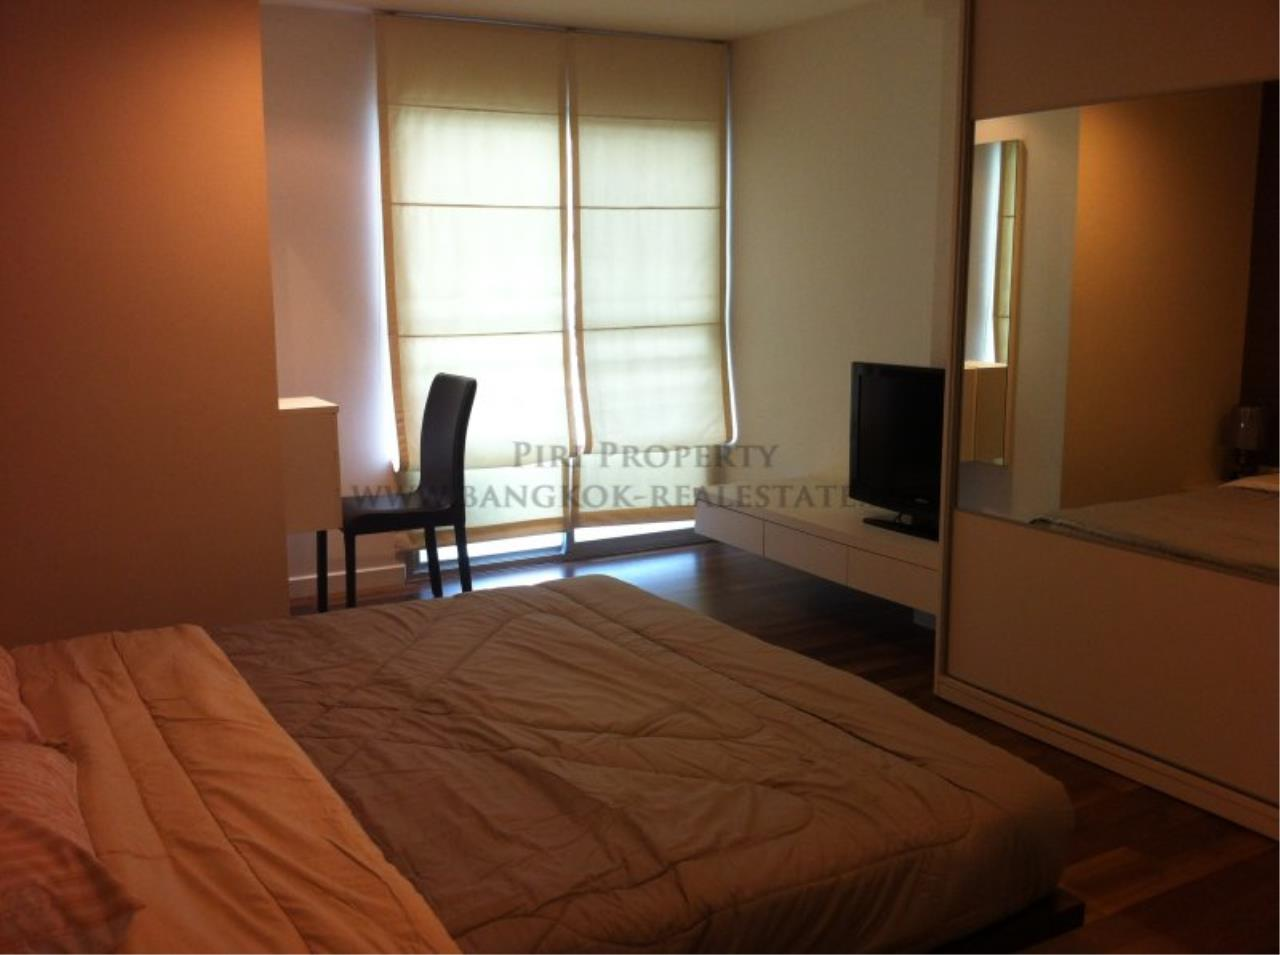 Piri Property Agency's The Room 79 - 1 Bedroom with Home Office or additional Study Room 2